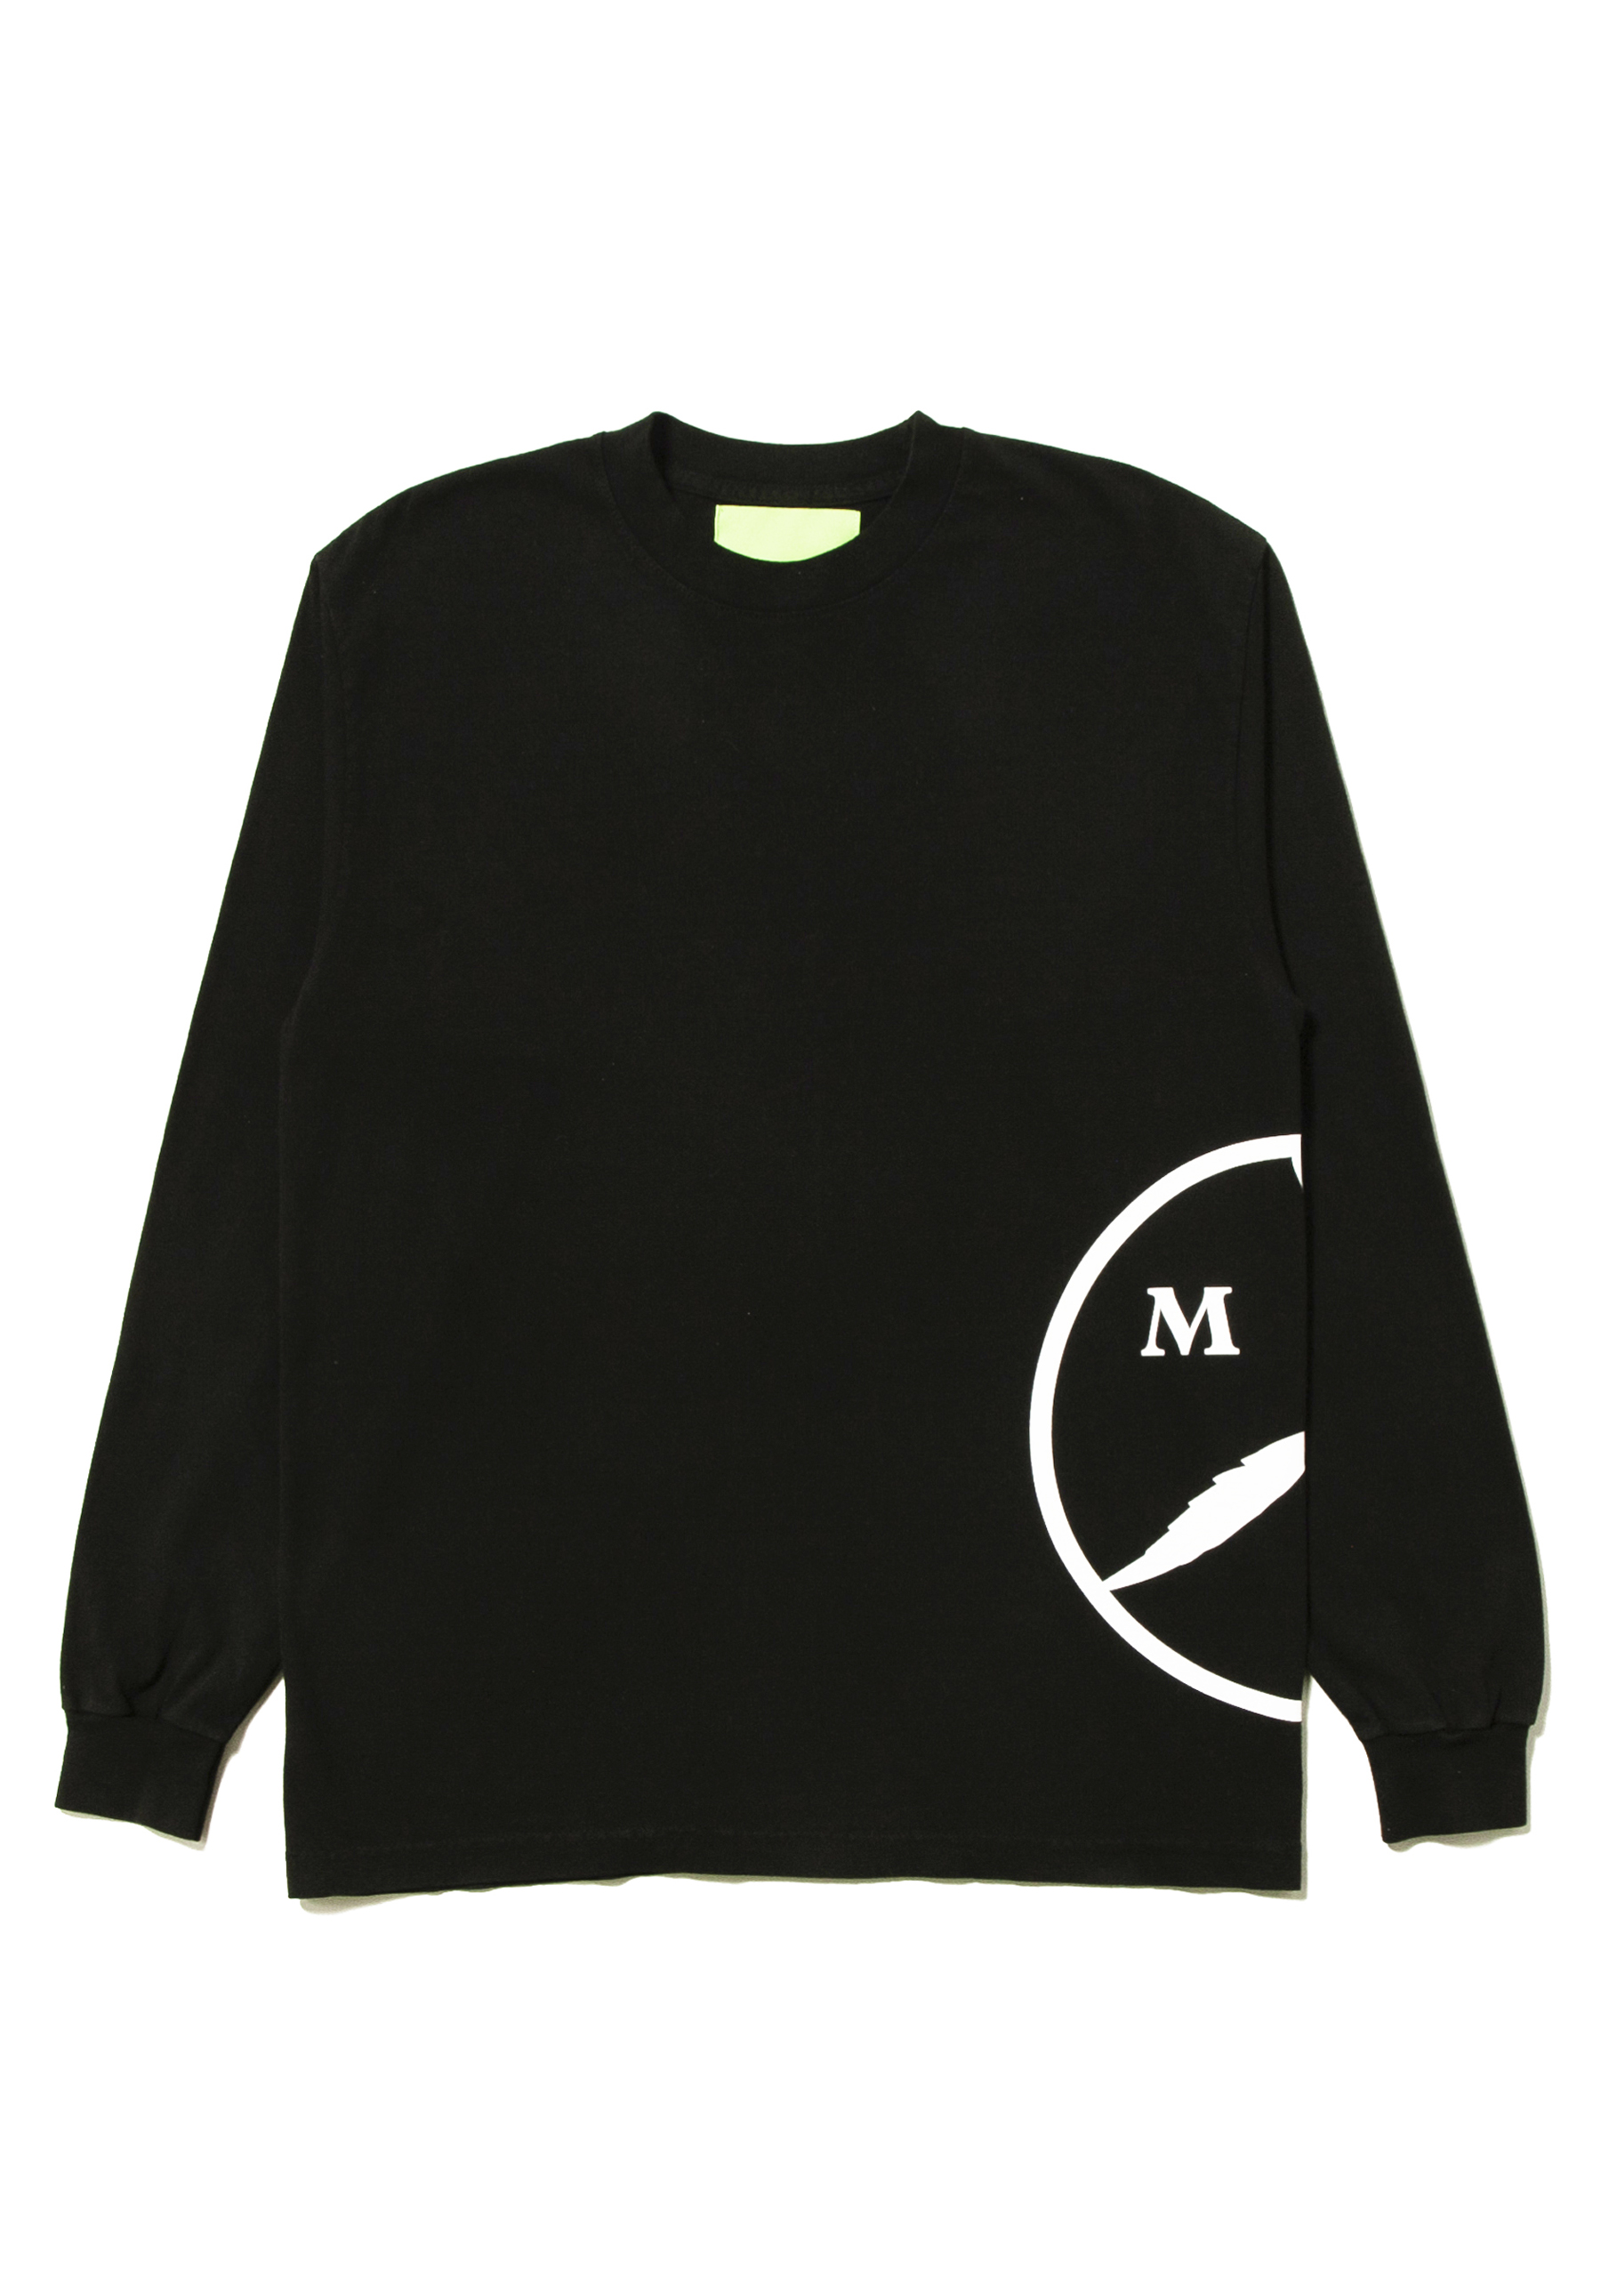 4521a8755 Mister Green - Peace/Sun Side L/S Tee - Black — Mister Green Life Store